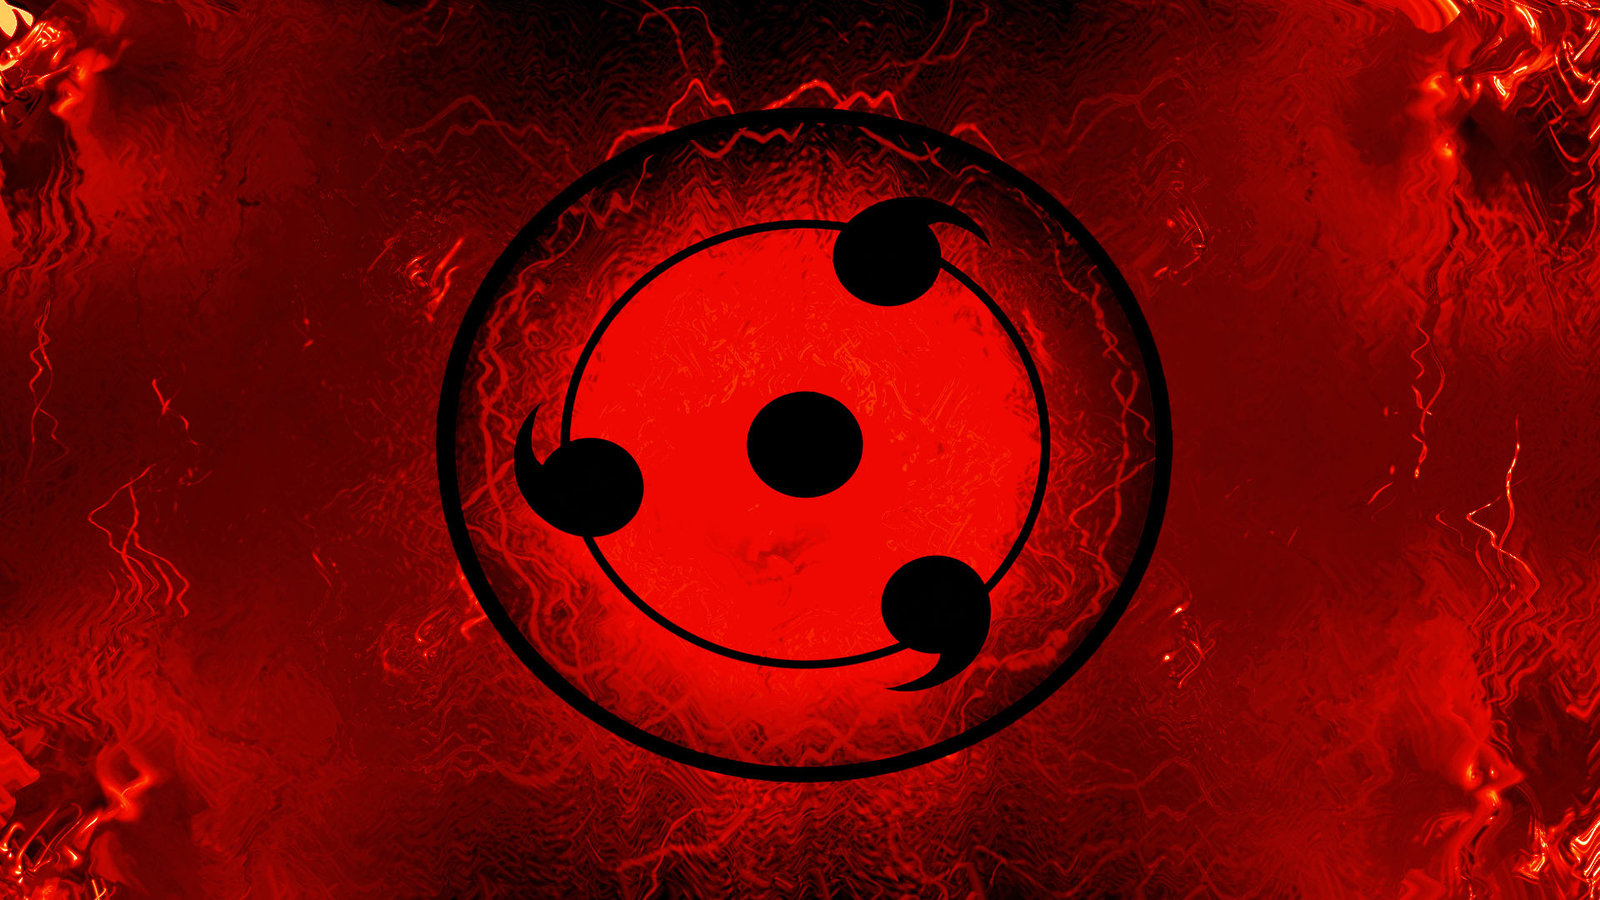 HD Sharingan Wallpaper - WallpaperSafari